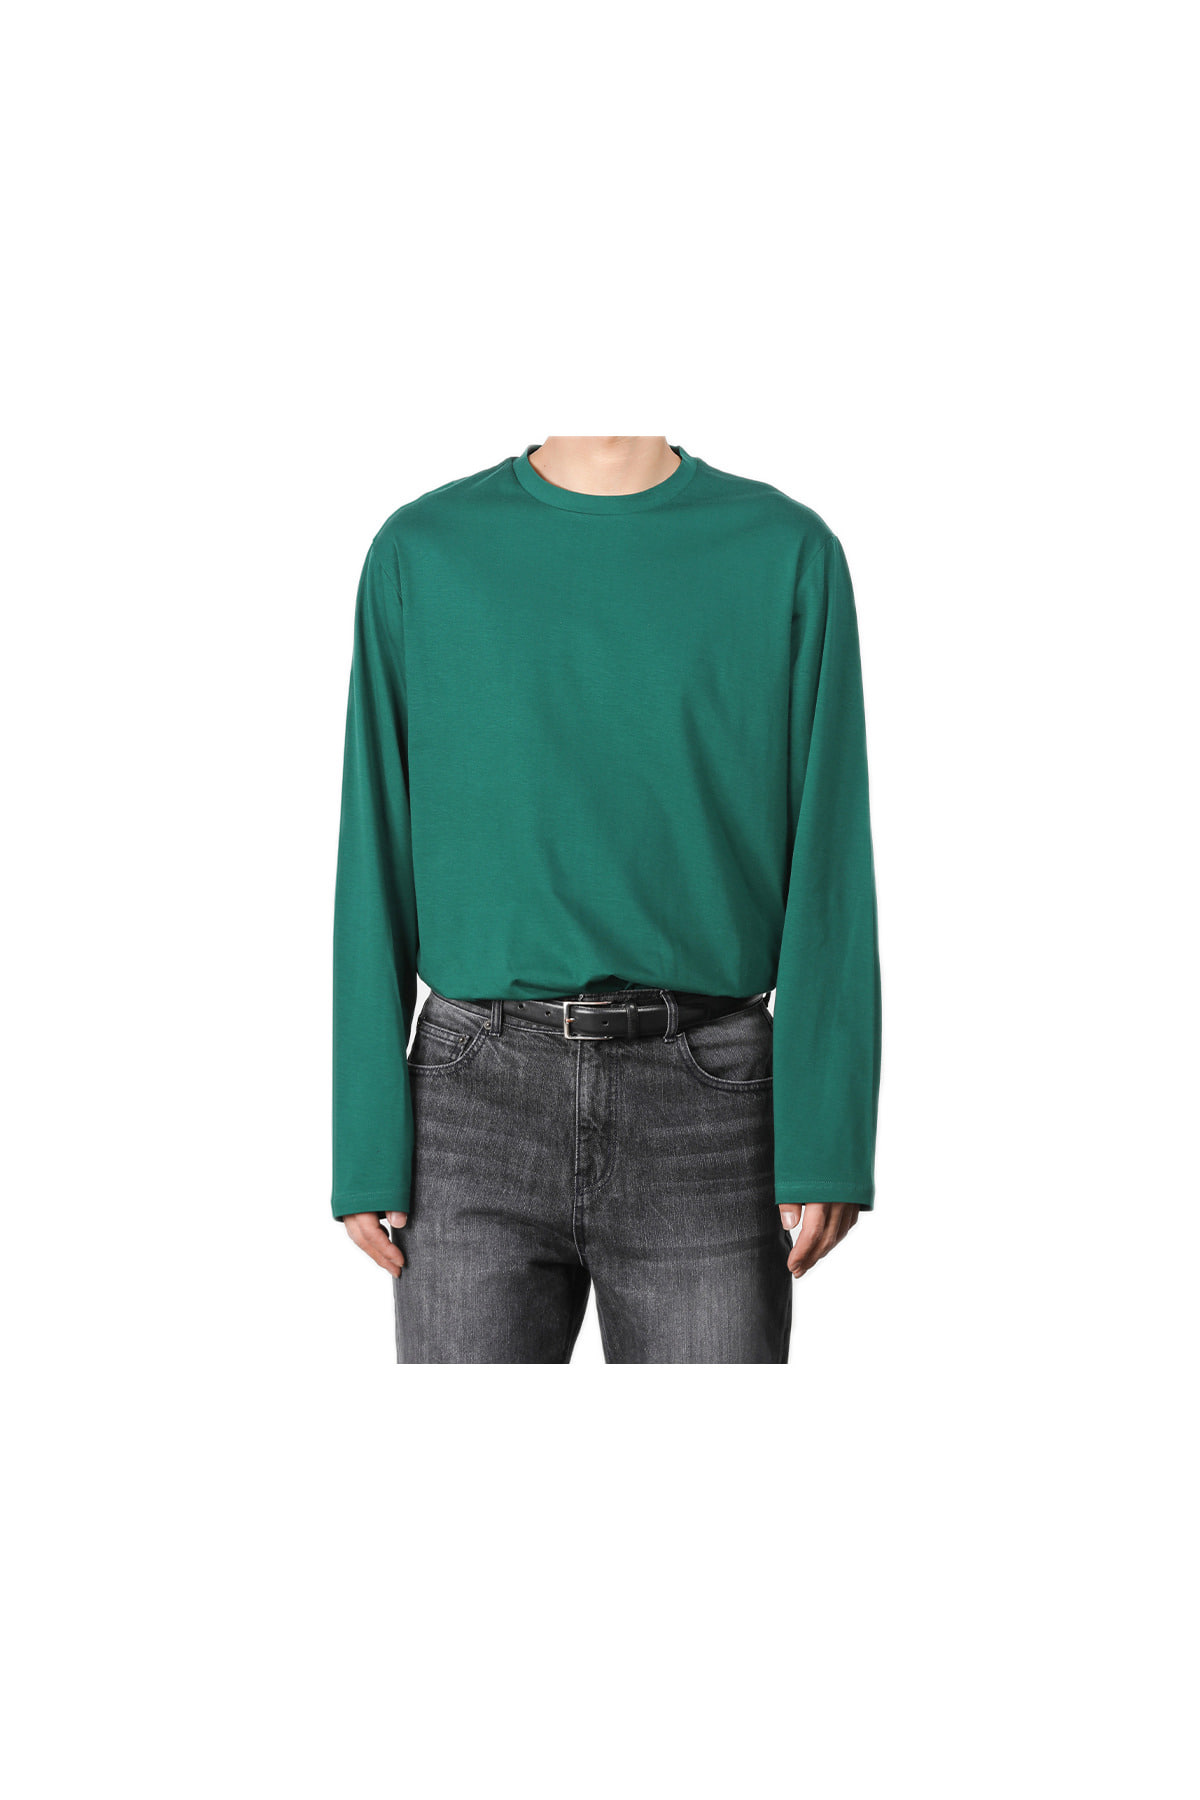 Pigment washing sleeve T-shirt (green) #jp30